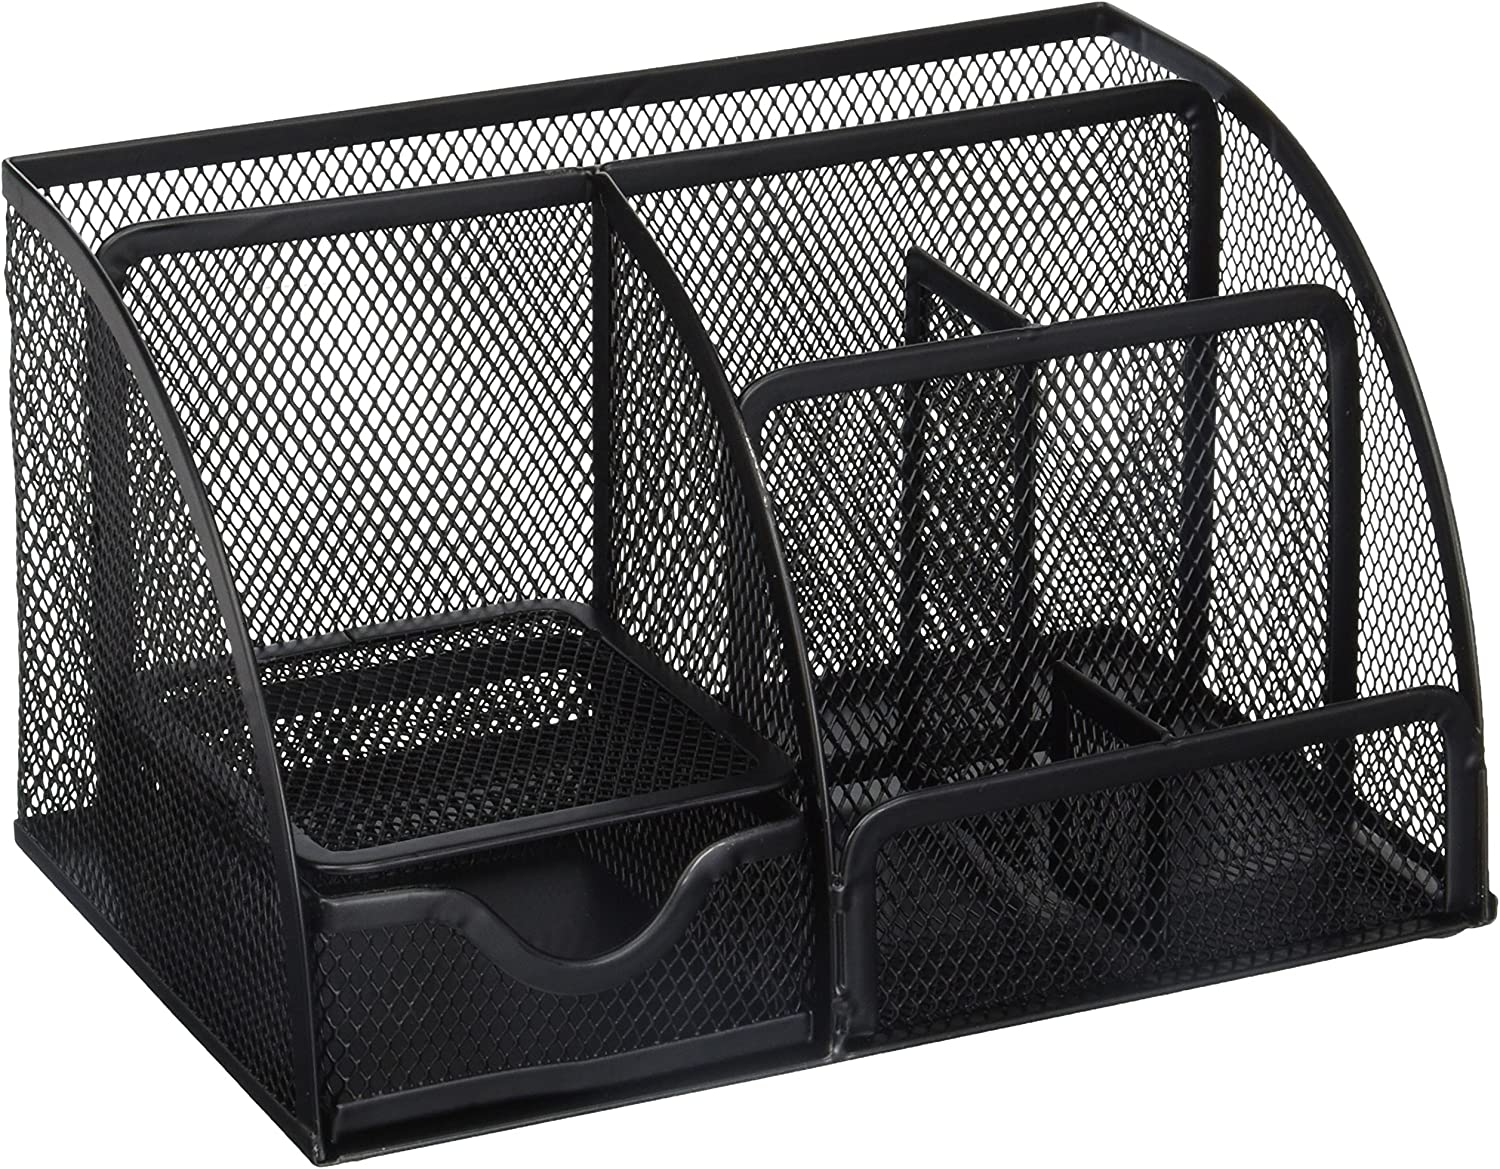 Greenco Mesh Office Supplies Desk Organizer Caddy, 6 Compartments, Black : Office Products